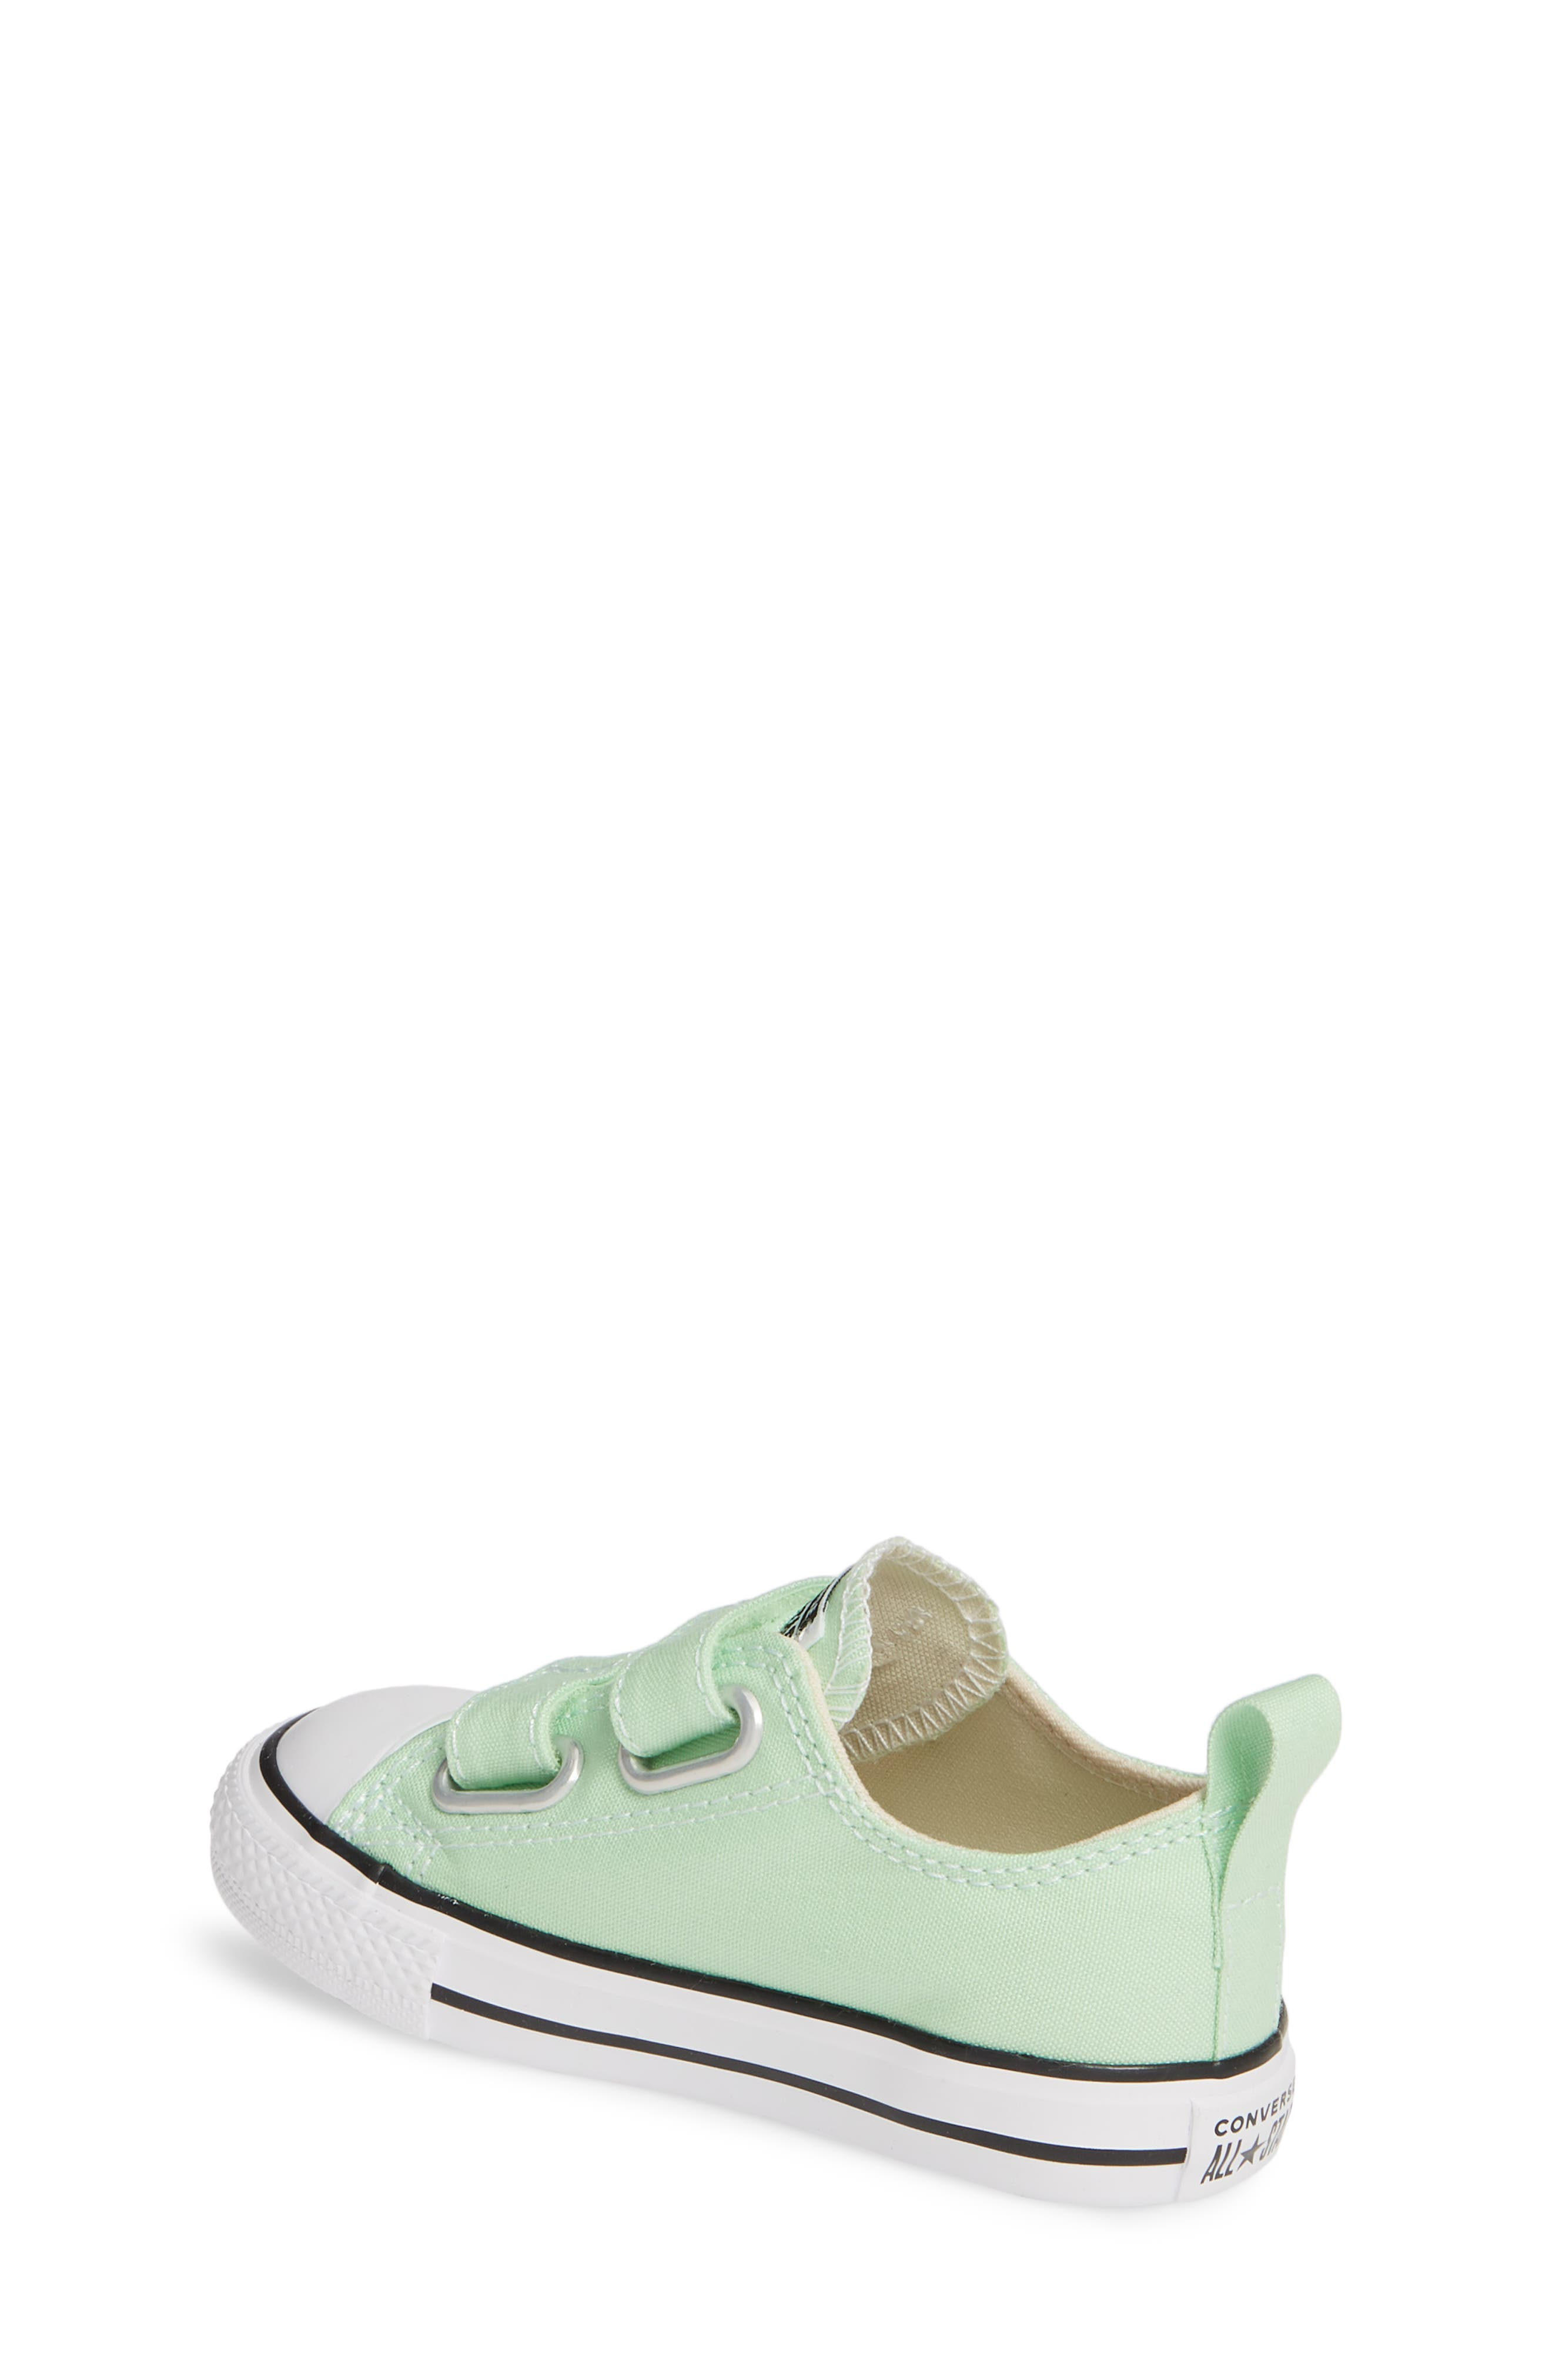 CONVERSE, Chuck Taylor<sup>®</sup> 'Double Strap' Sneaker, Alternate thumbnail 2, color, LT. APHID GREEN